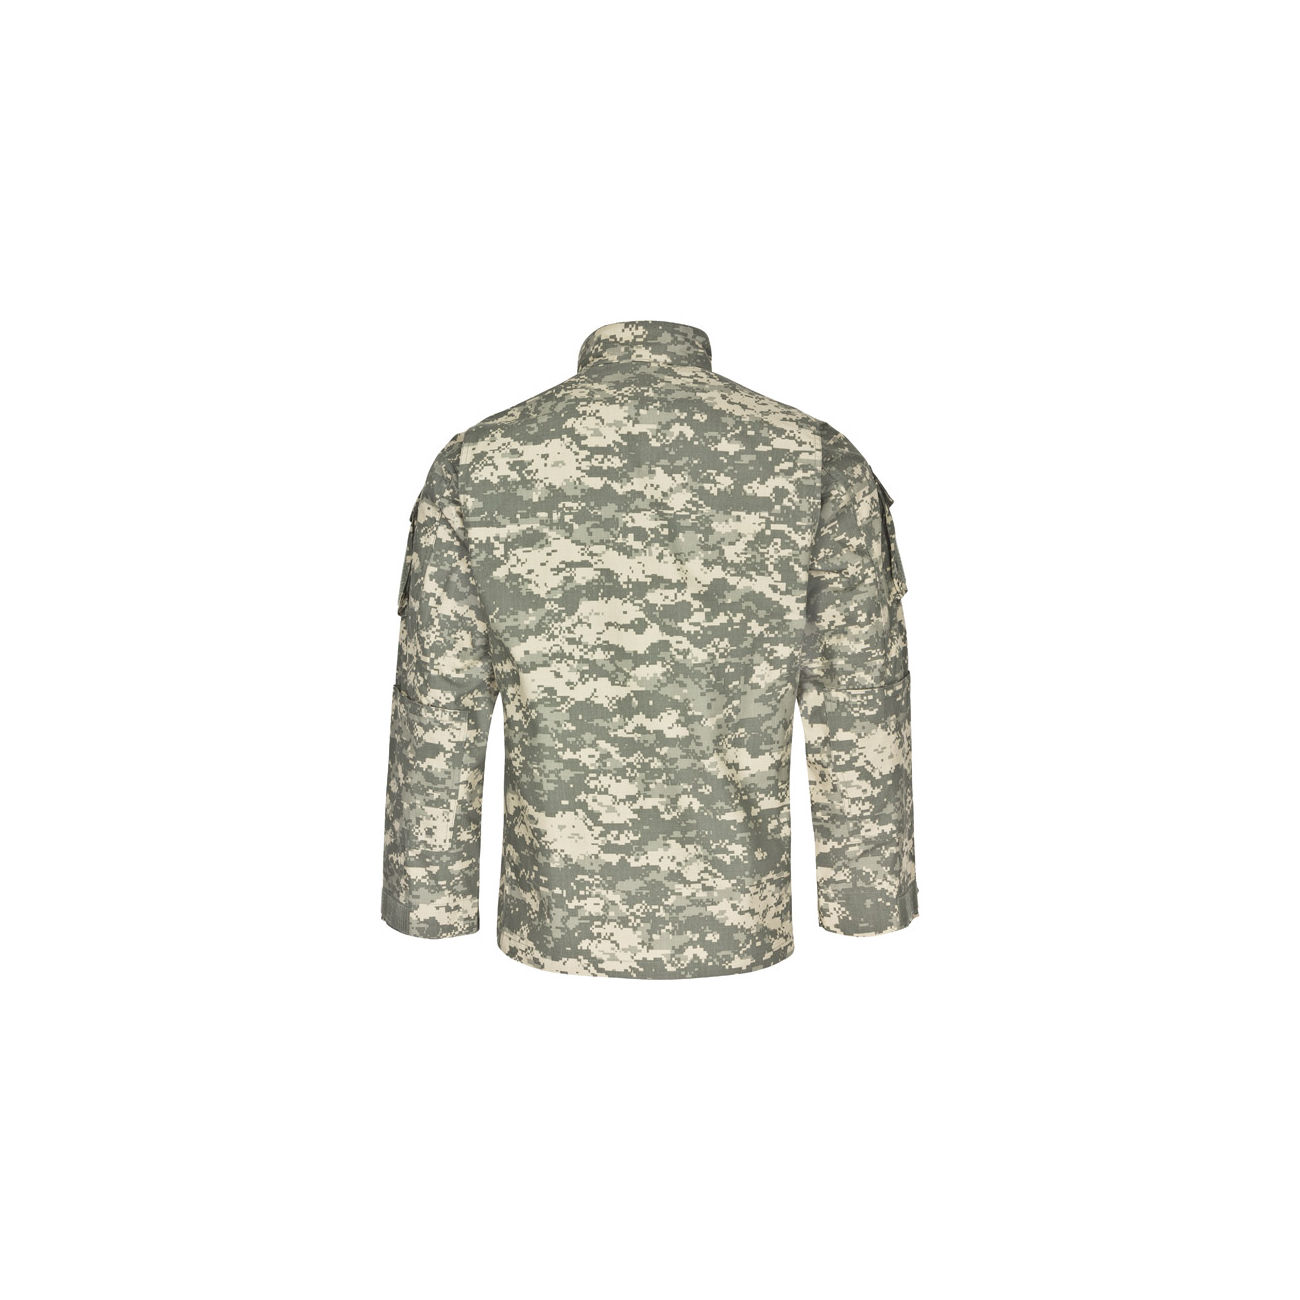 Mil-Tec ACU Feldjacke, AT-digital 1